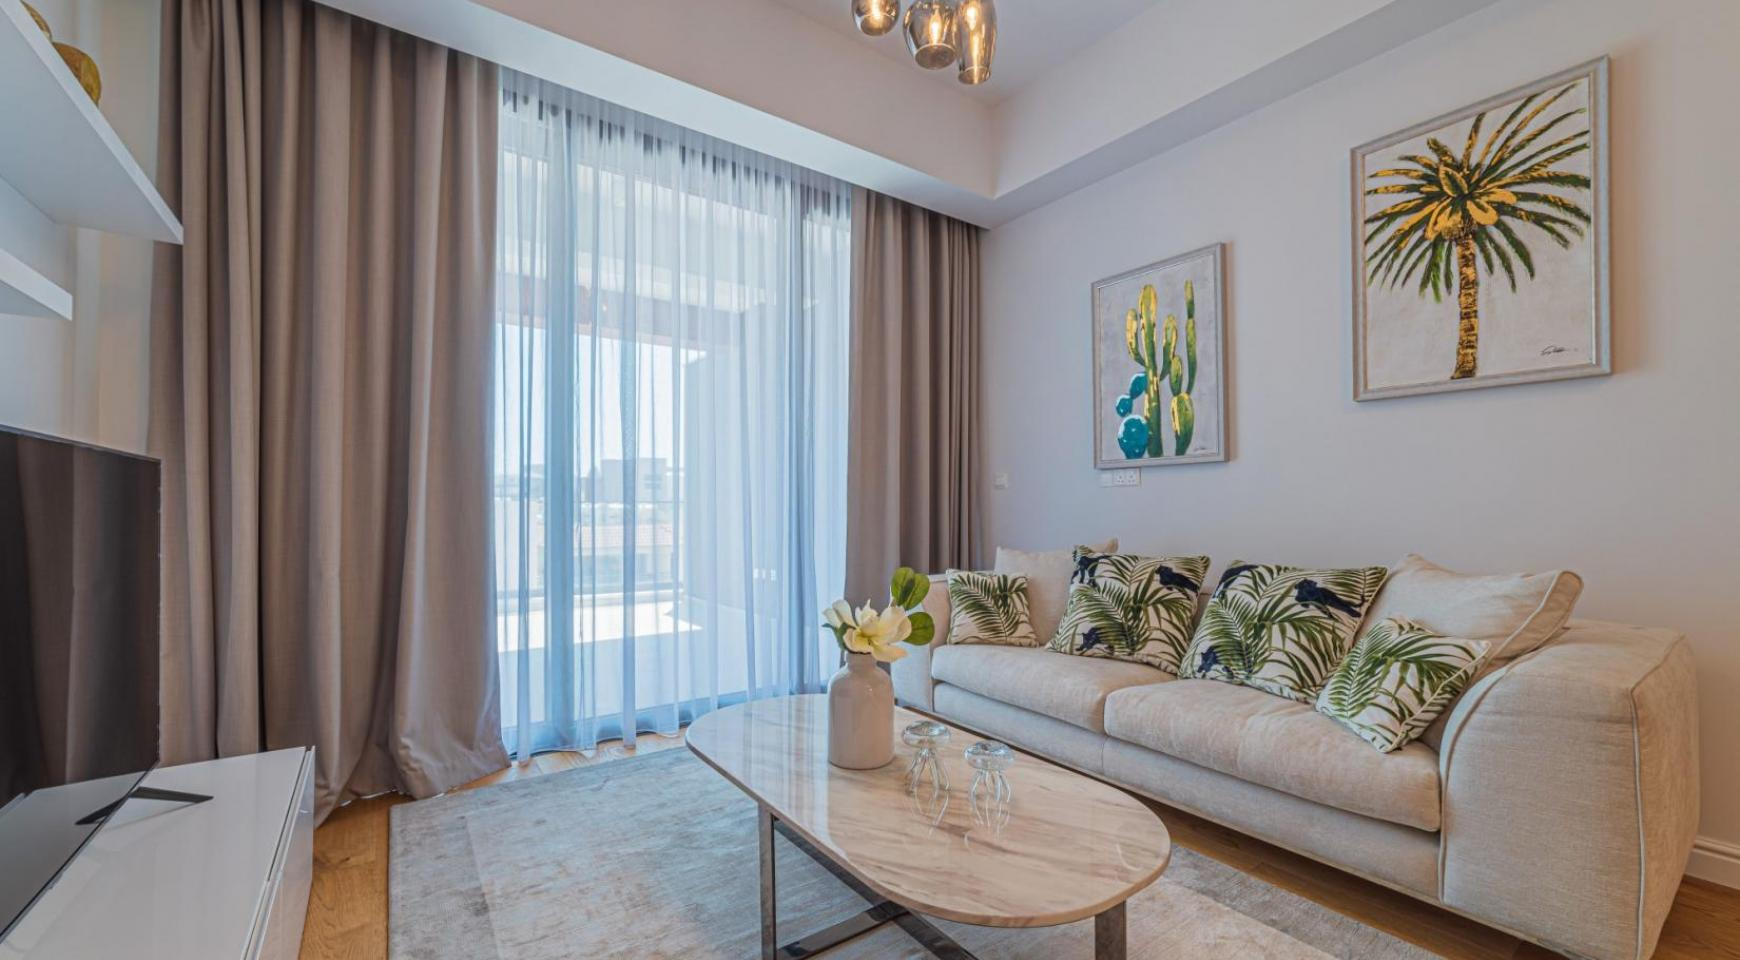 Hortensia Residence, Apt. 203. 3 Bedroom Apartment within a New Complex near the Sea - 13